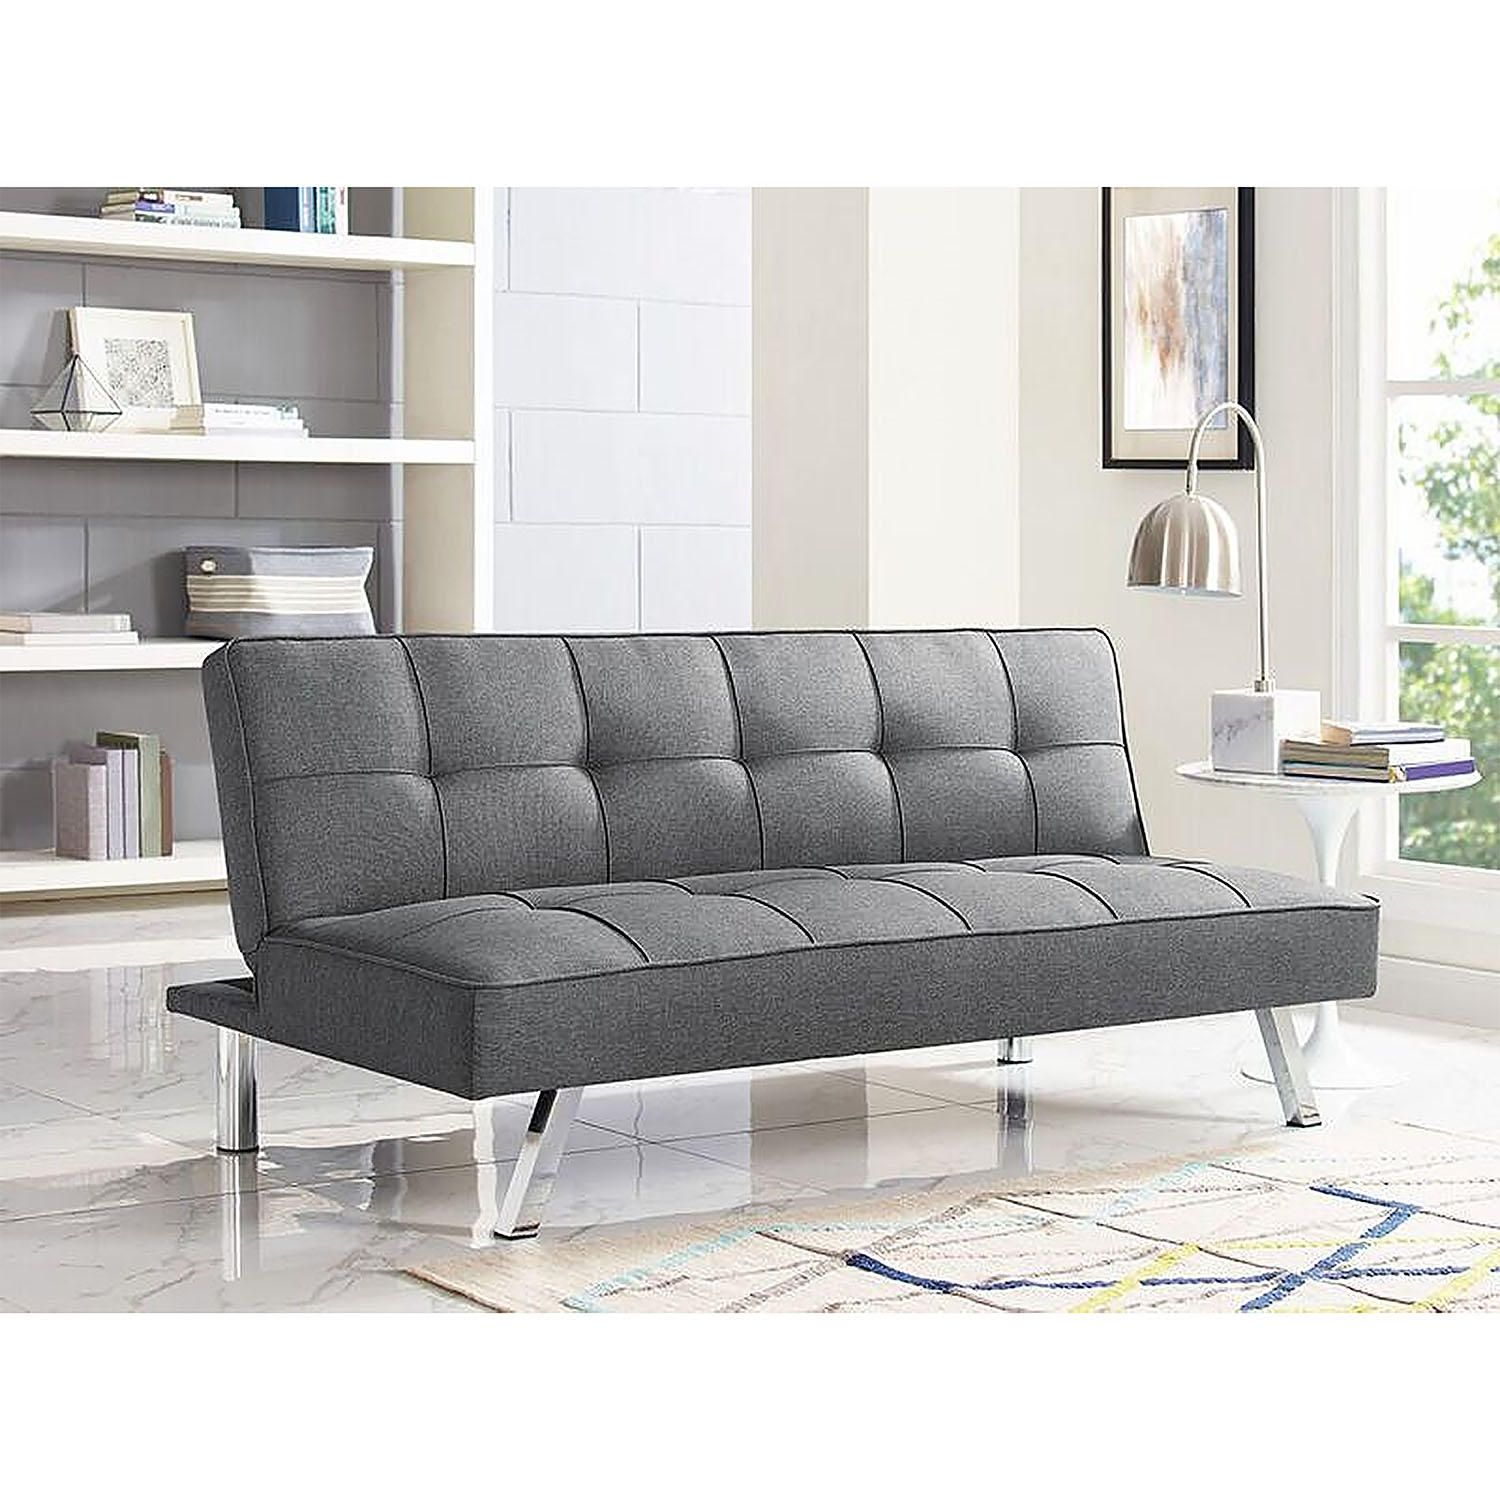 Pin On Furniture #serta #living #room #furniture